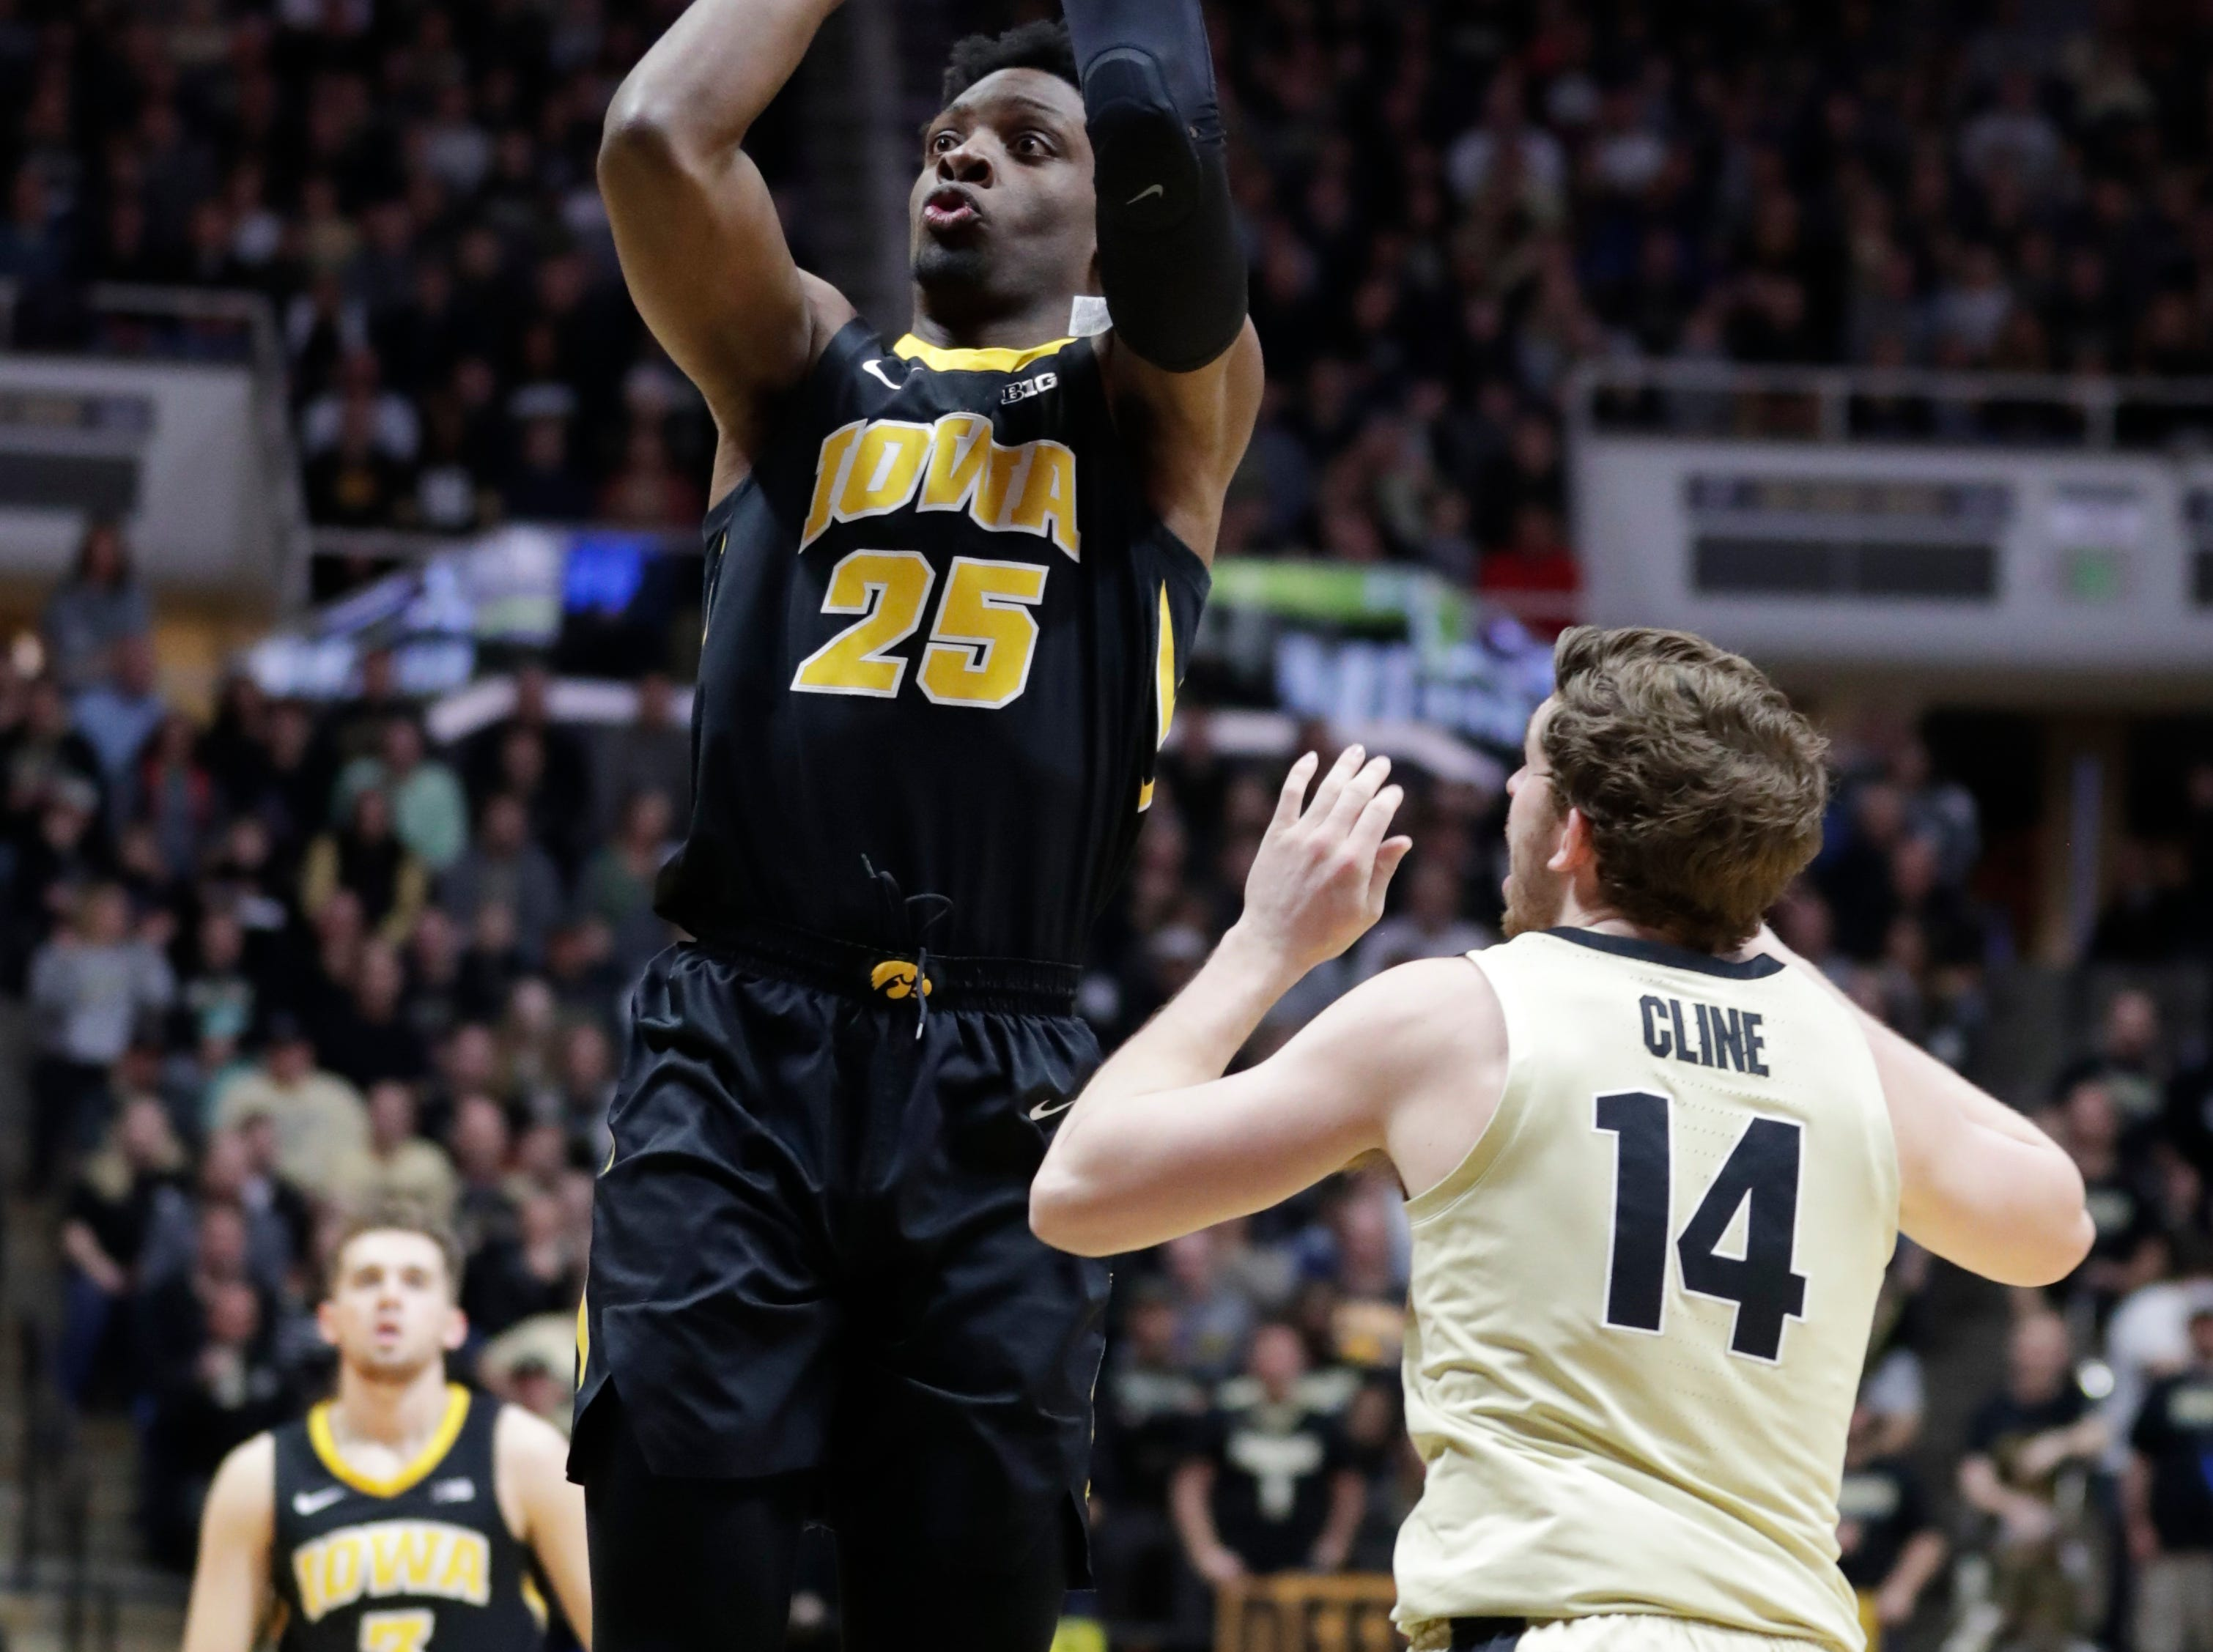 Iowa forward Tyler Cook (25) shoots over Purdue guard Ryan Cline (14) during the first half of an NCAA college basketball game in West Lafayette, Ind., Thursday, Jan. 3, 2019.